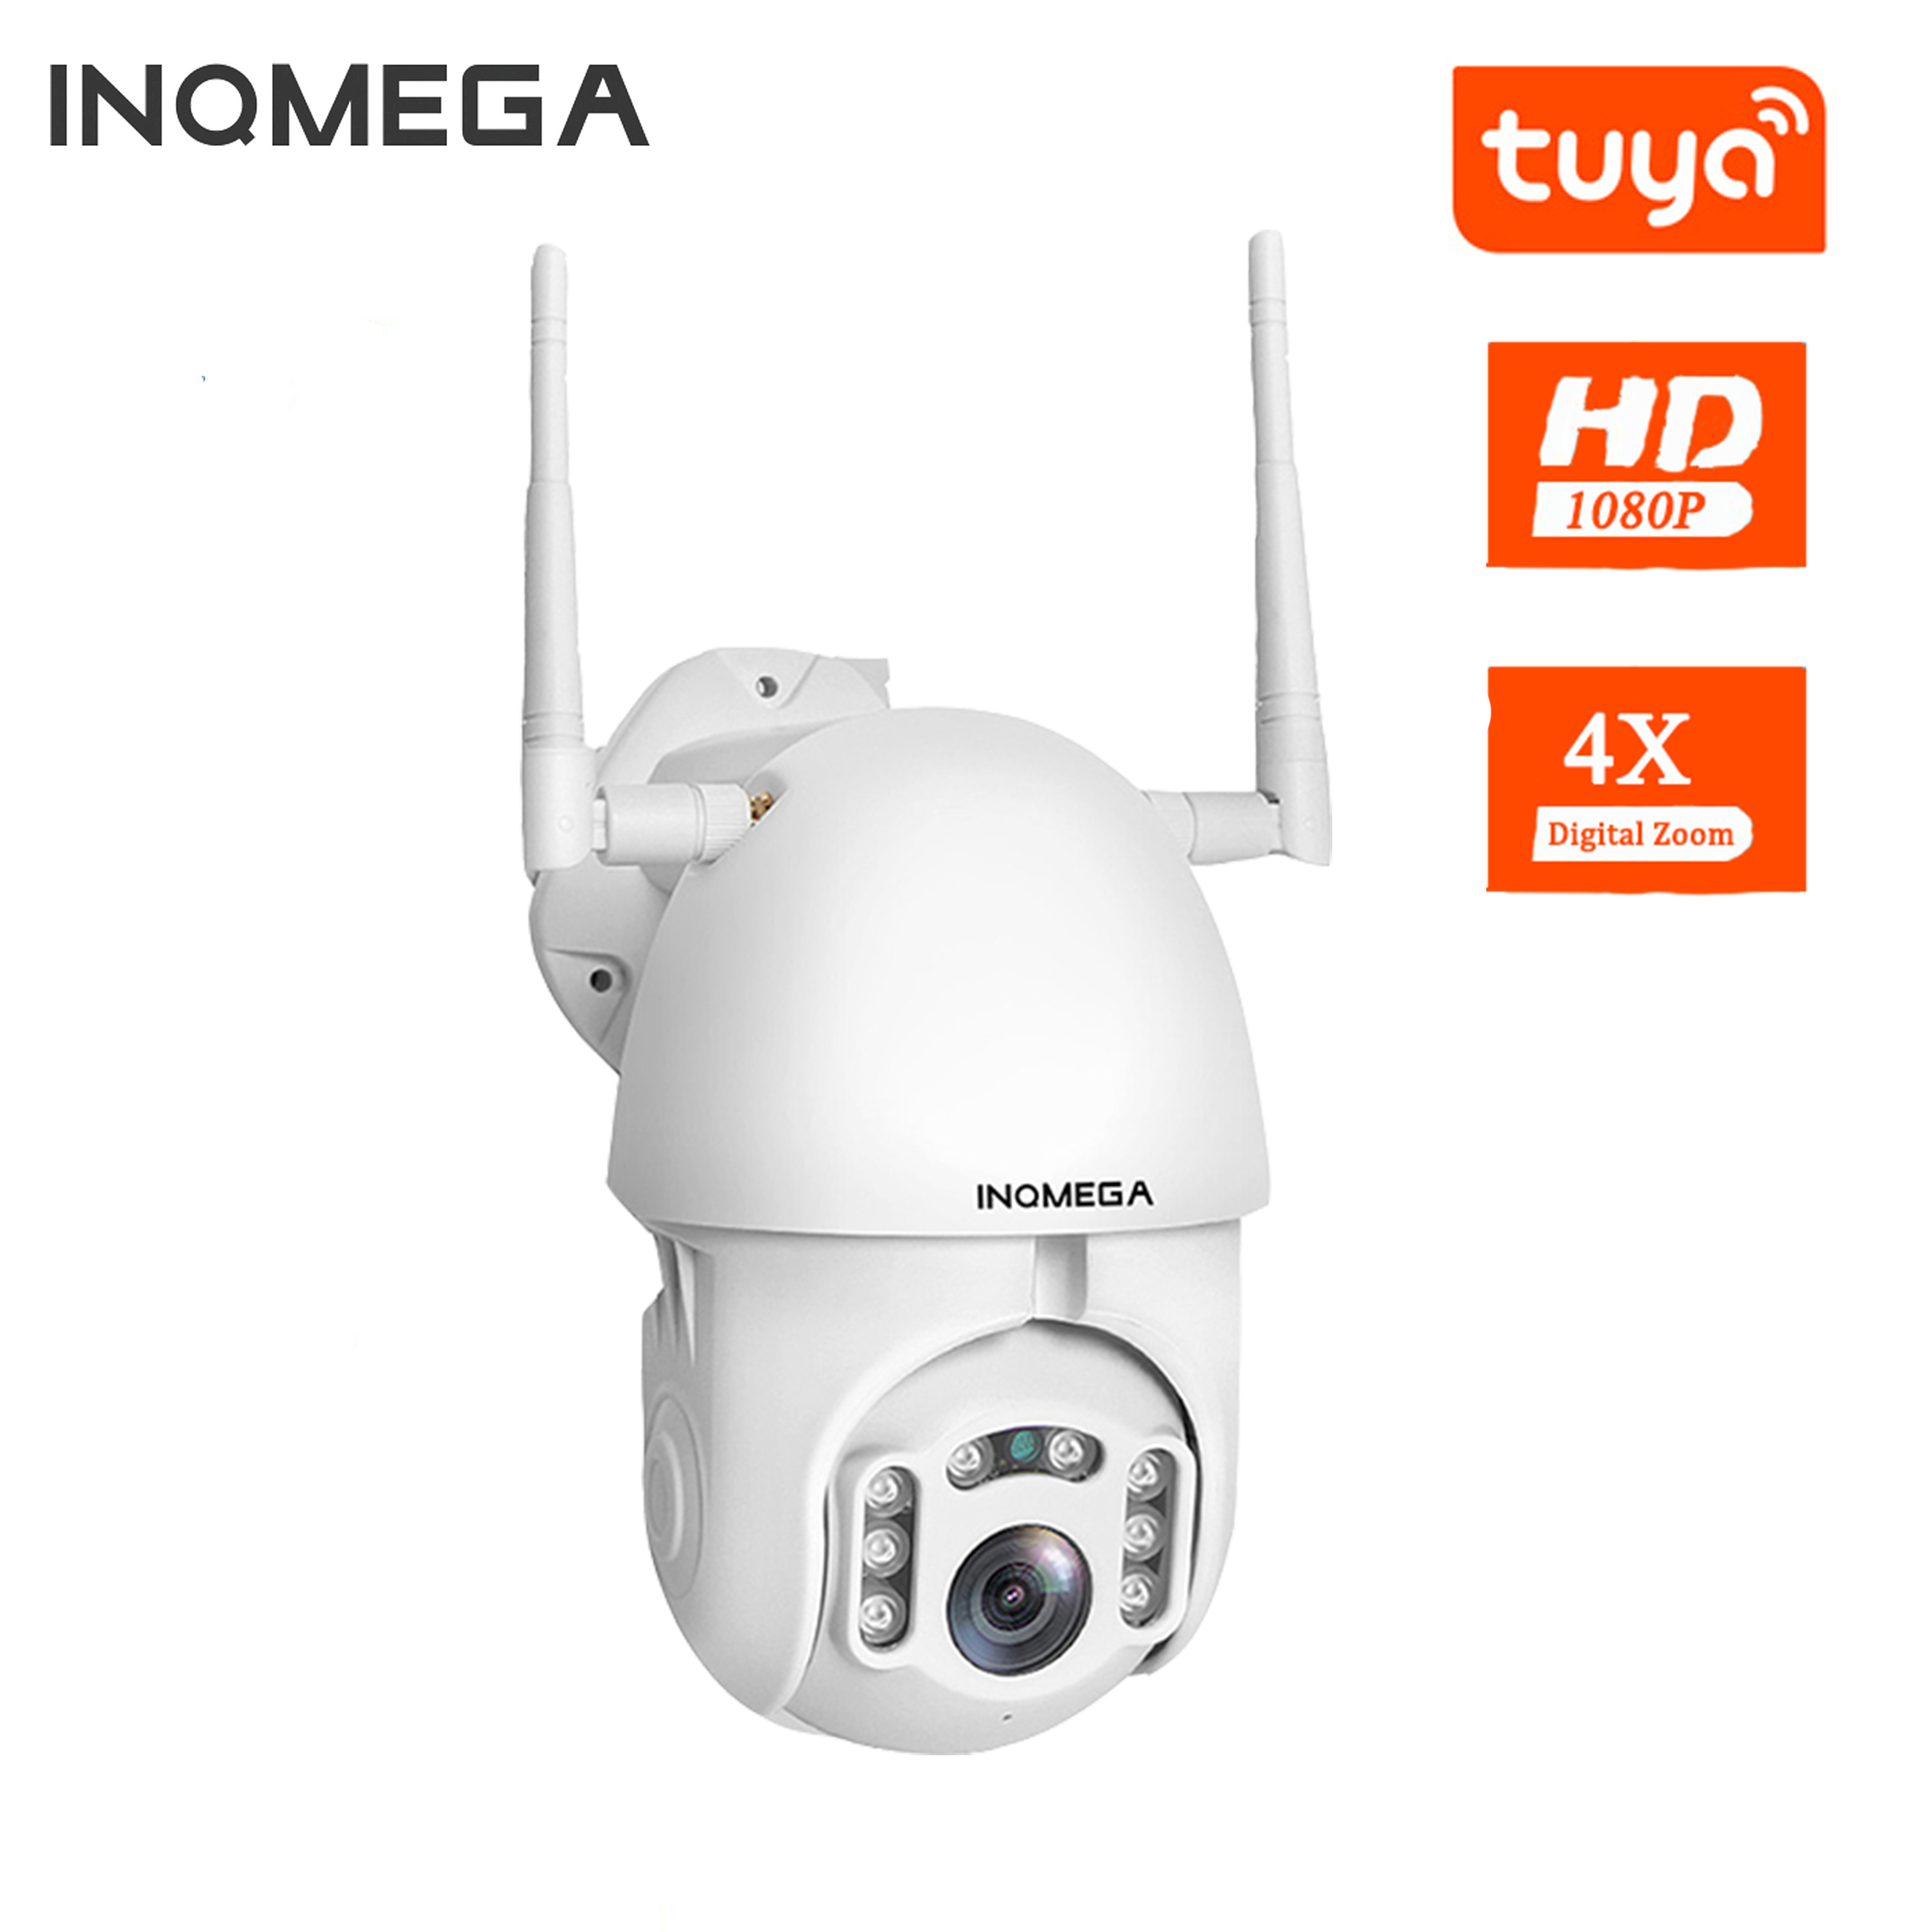 INQMEGA 1080P IP Camera WiFi Wireless Auto Tracking PTZ Speed Dome Camera Outdoor Security Surveillance Waterproof Camera TUYA